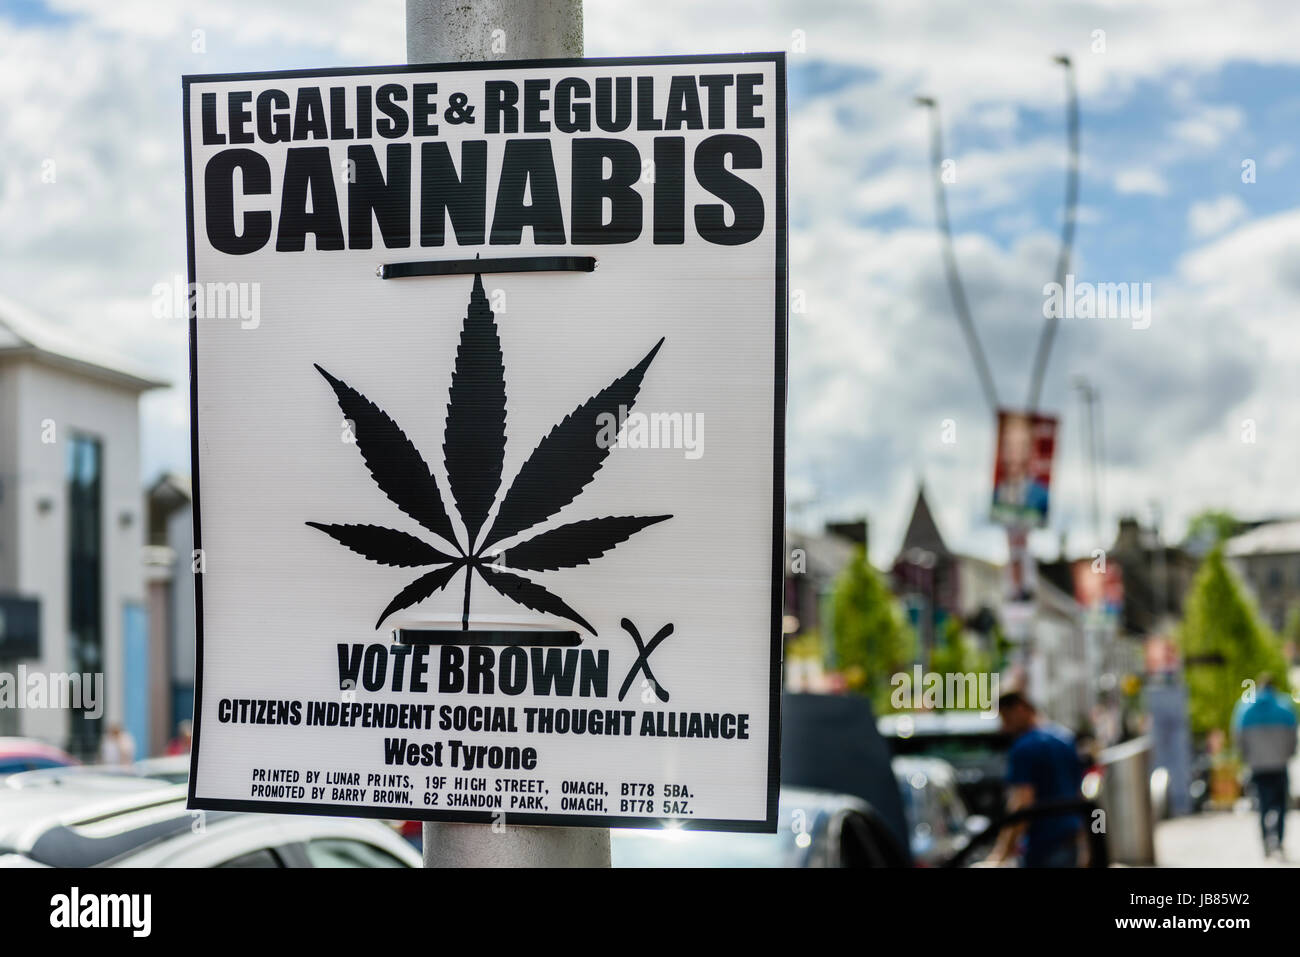 Election poster calling for the legalisation and regulation of cannabis. - Stock Image